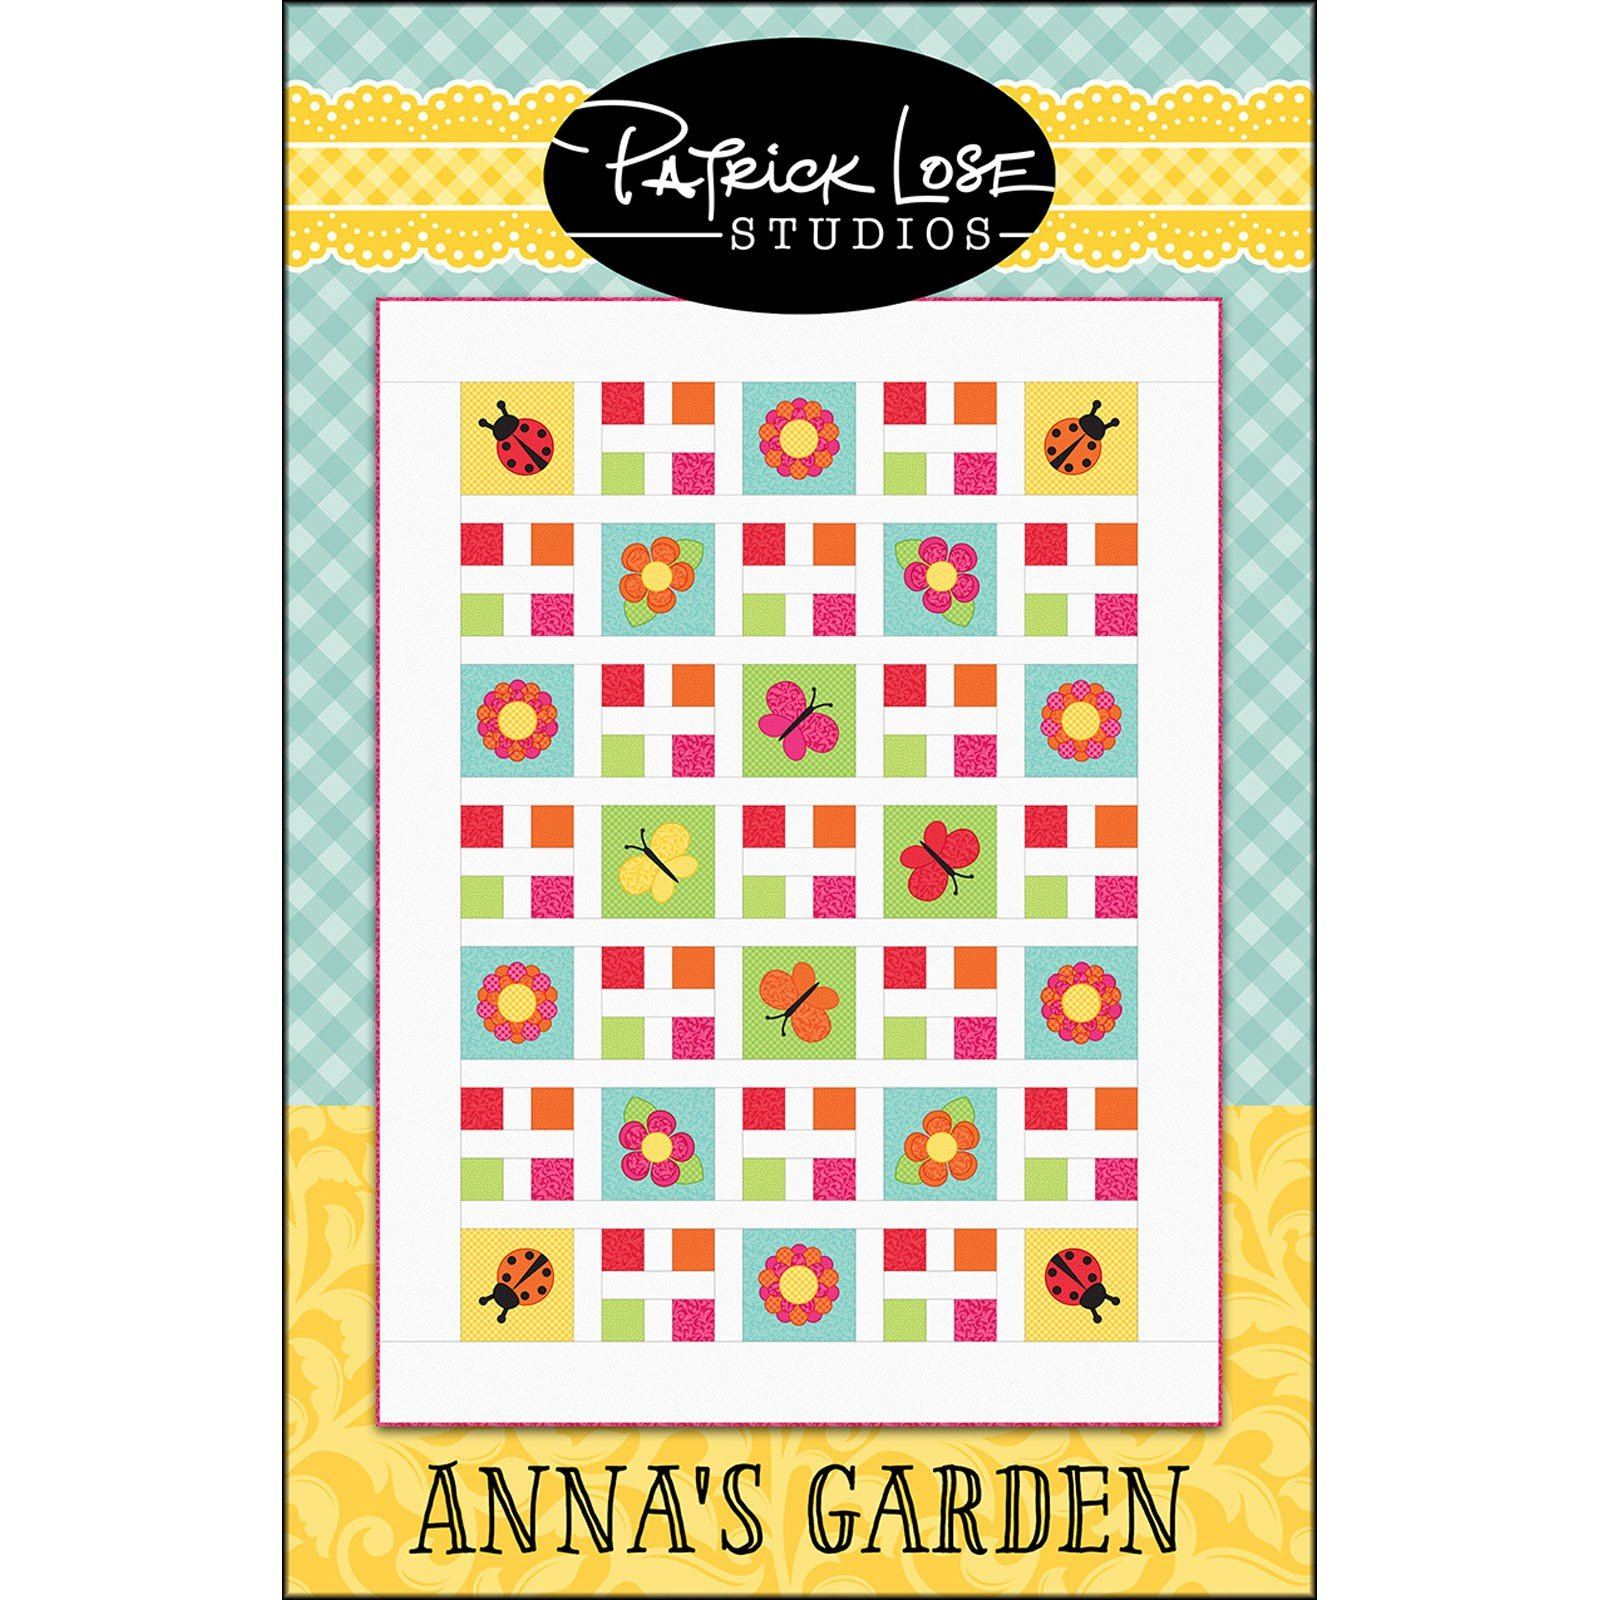 Pattern - Anna's Garden - By Patrick Lose